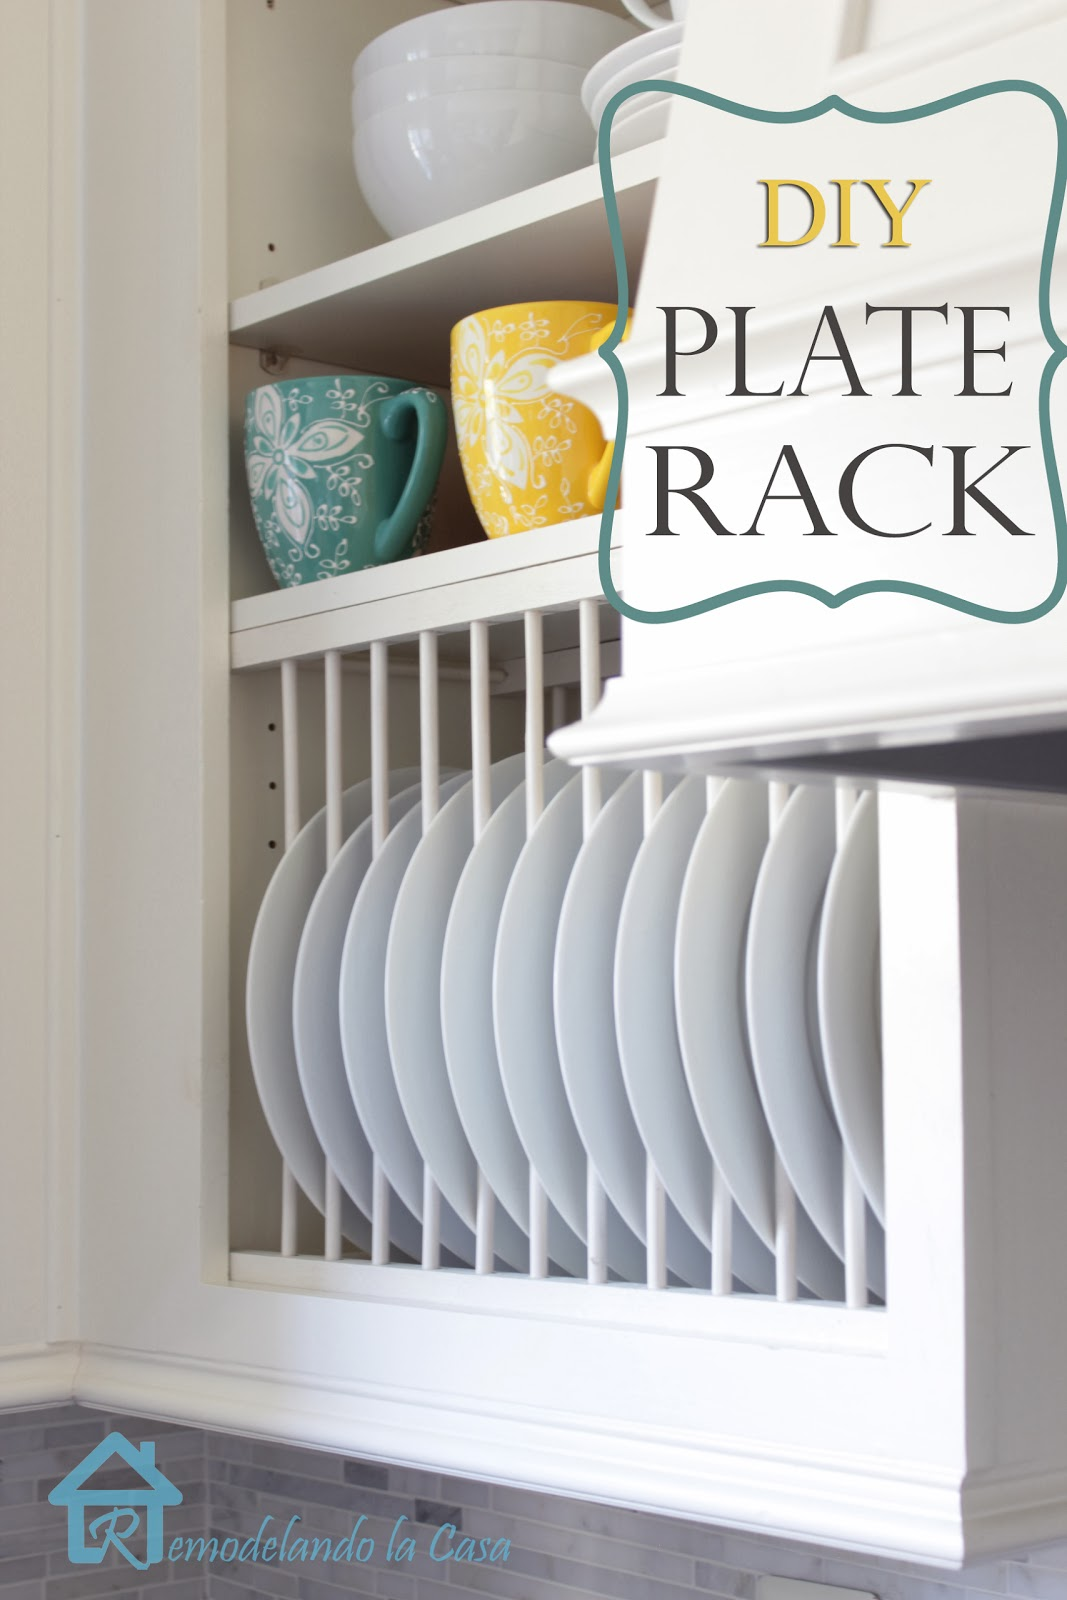 A Regular Cabinet Is Giving A Plate Rack With Round And Square Dowels